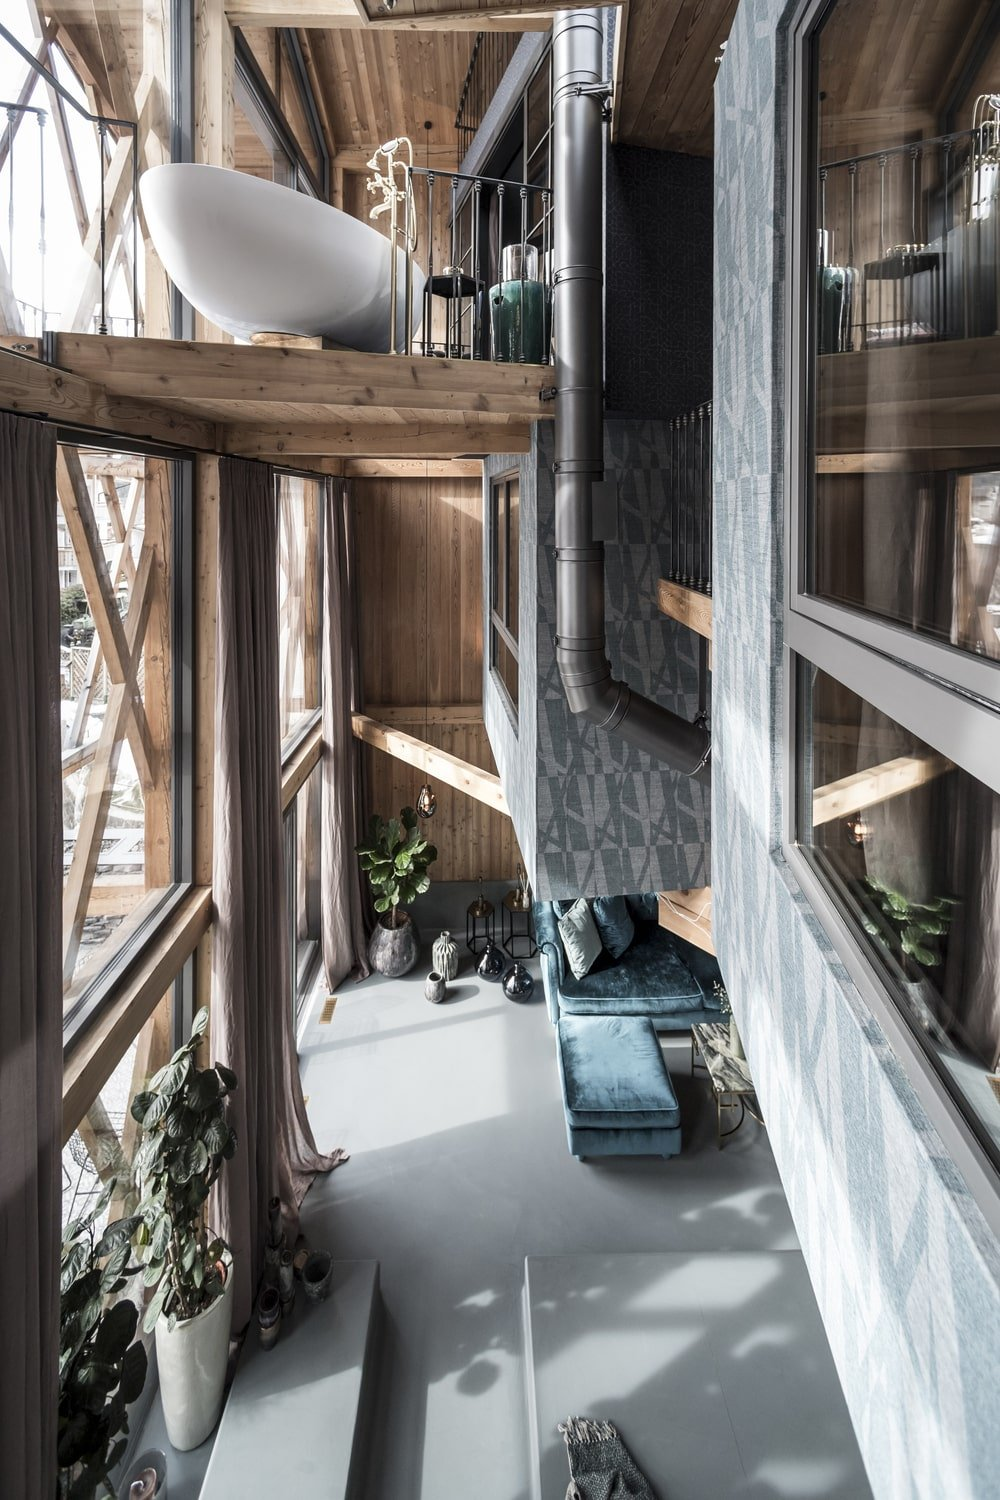 This is a look down on the living room area from the vantage of the indoor balcony showcasing the massive glass wall and wooden accents.